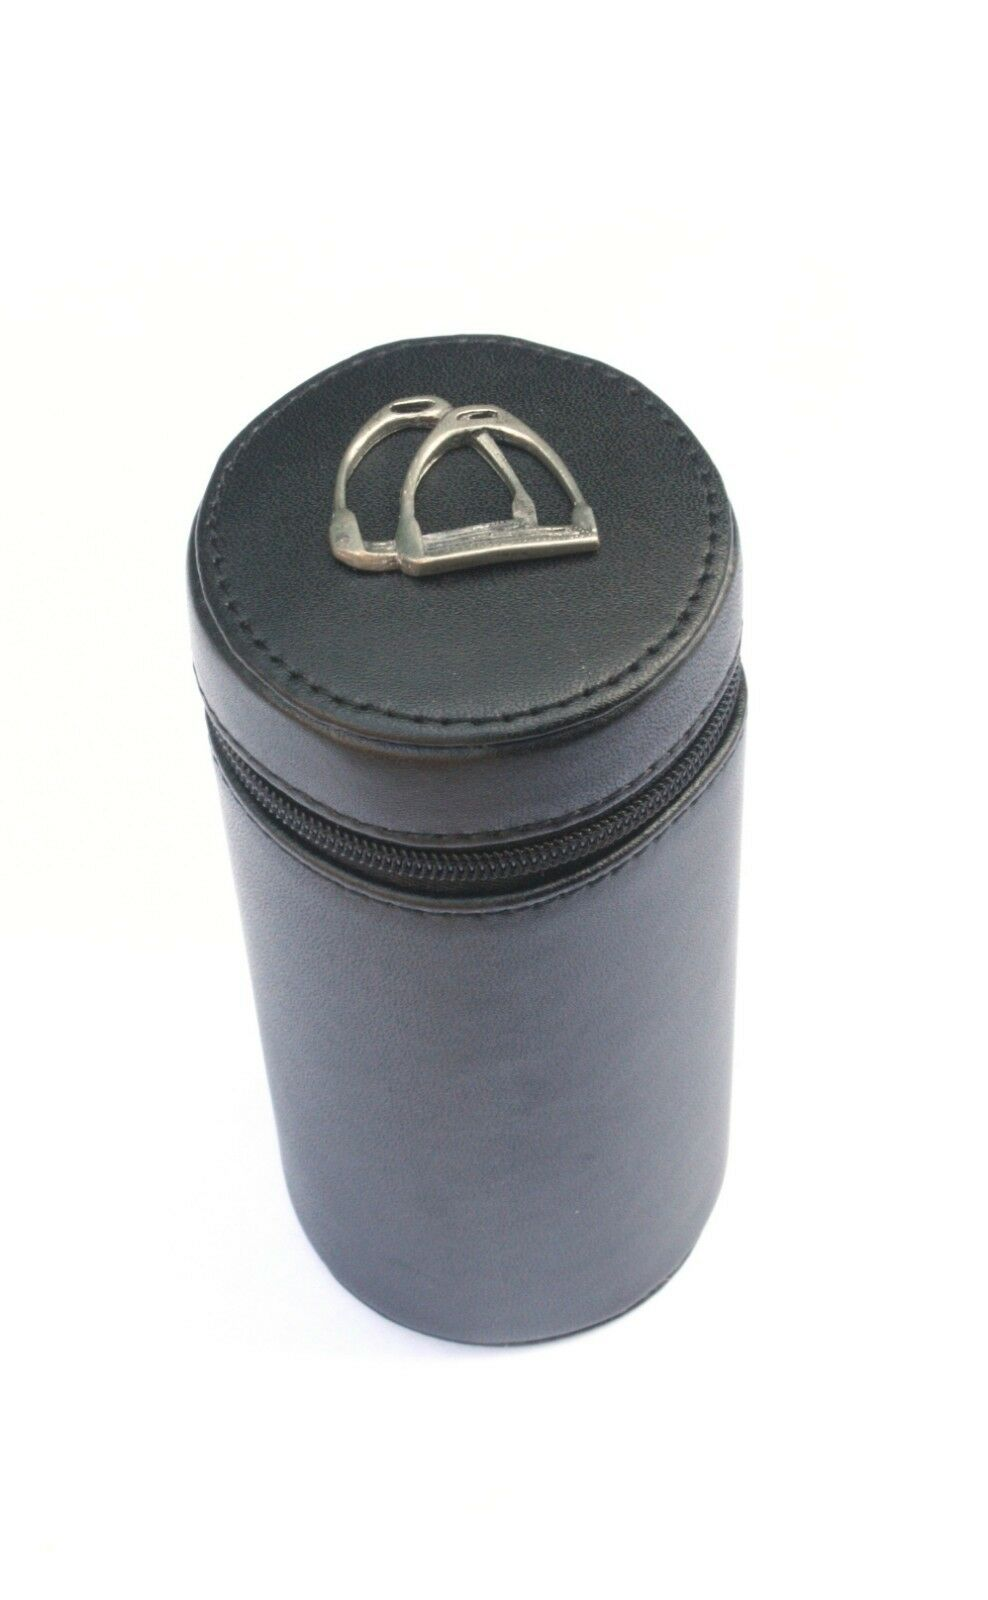 Horse Stirrup Shooting Peg Position Finder Numberojo Cups 1-10 negro Leather Case